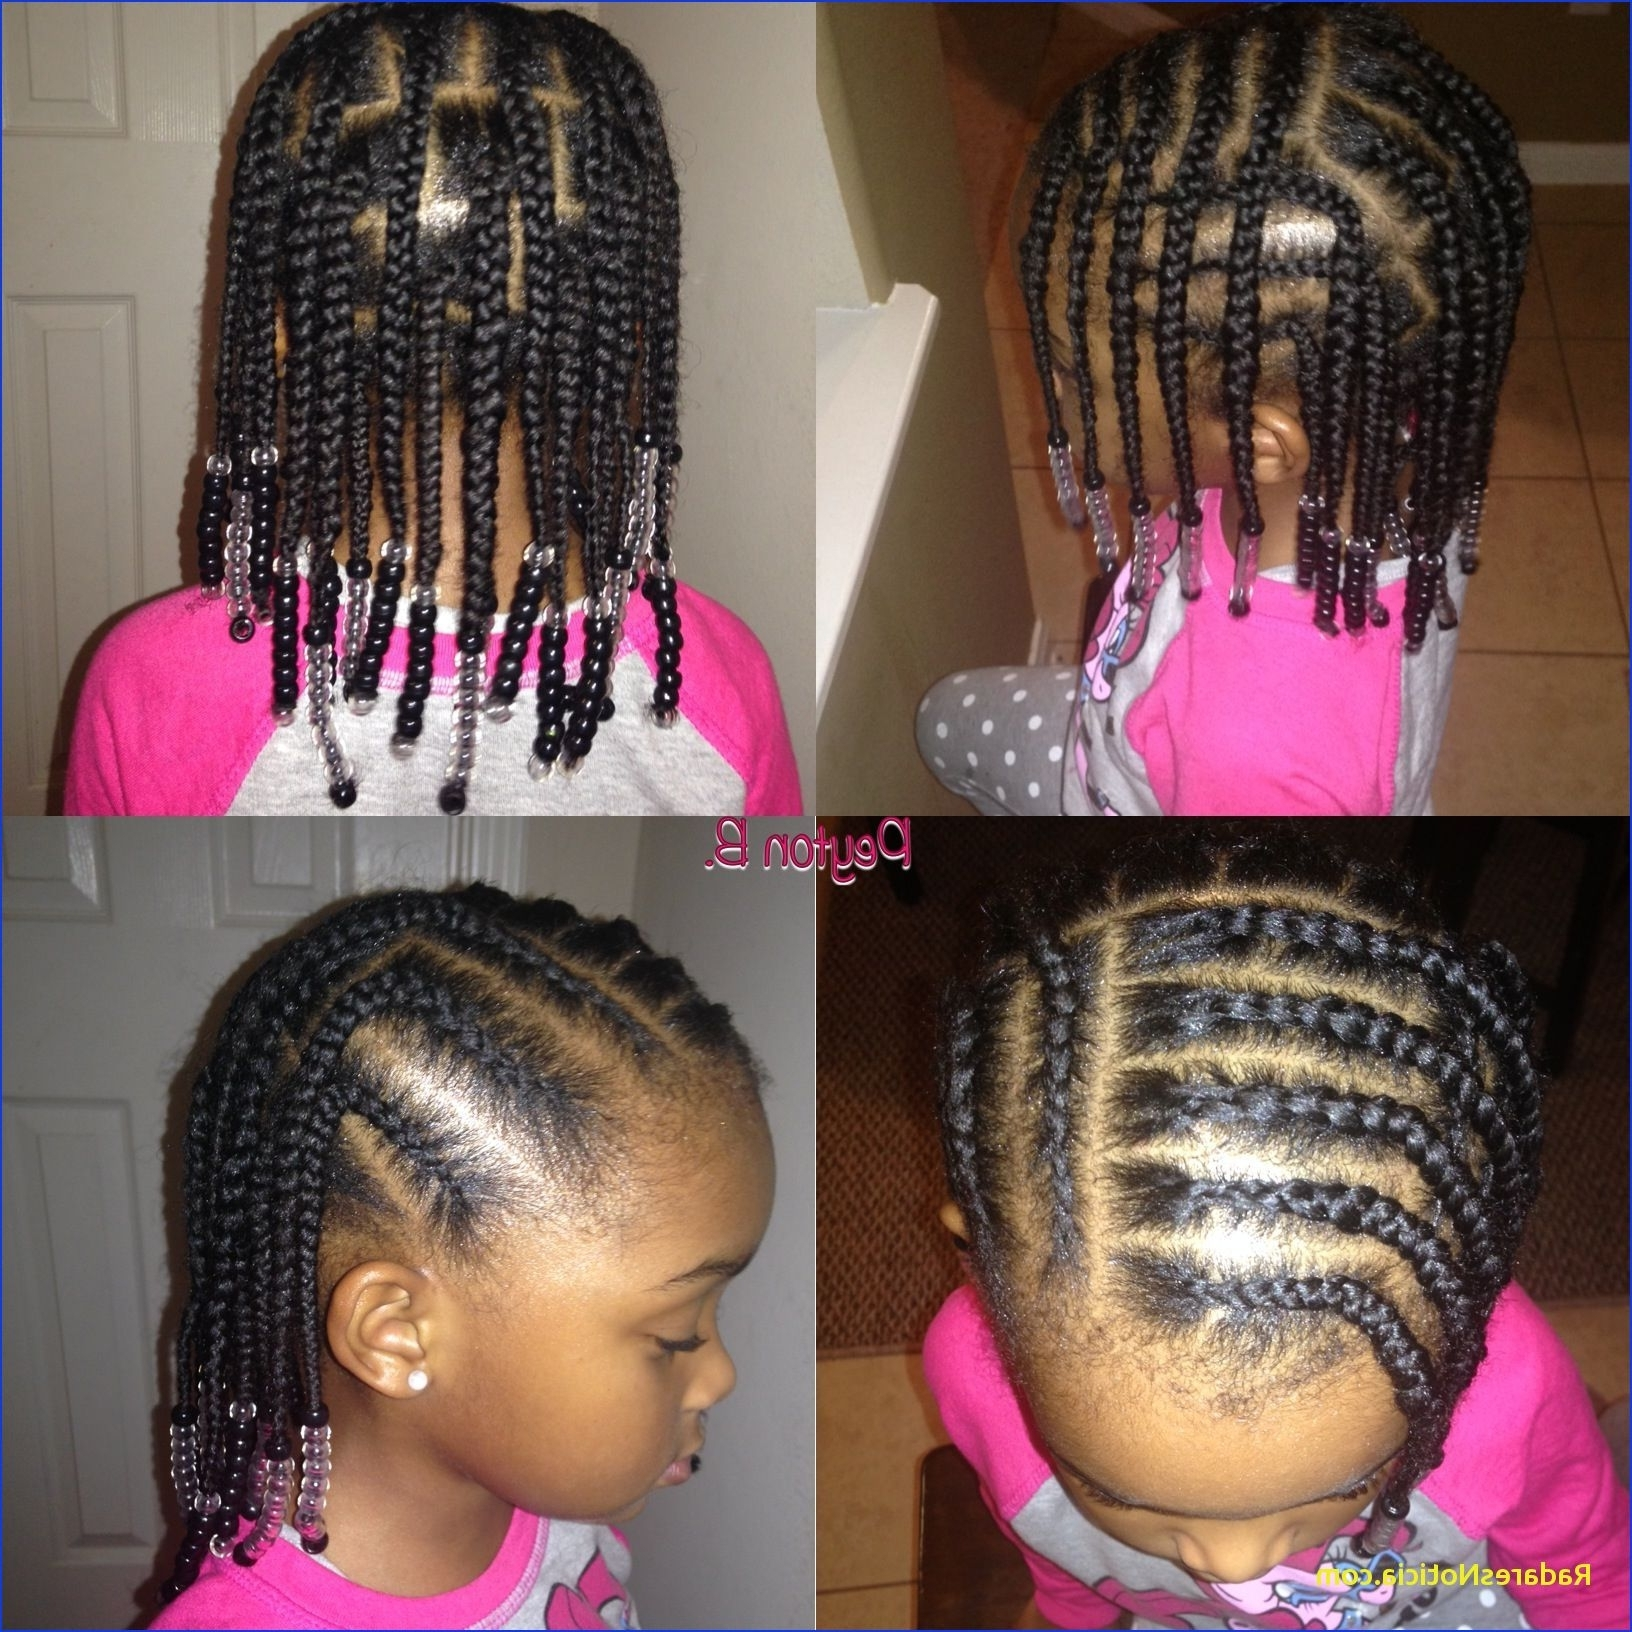 Toddler Braiding Hairstyles Box Braids Cornrows Beads Natural With Well Known Toddlers Braided Hairstyles (View 14 of 15)